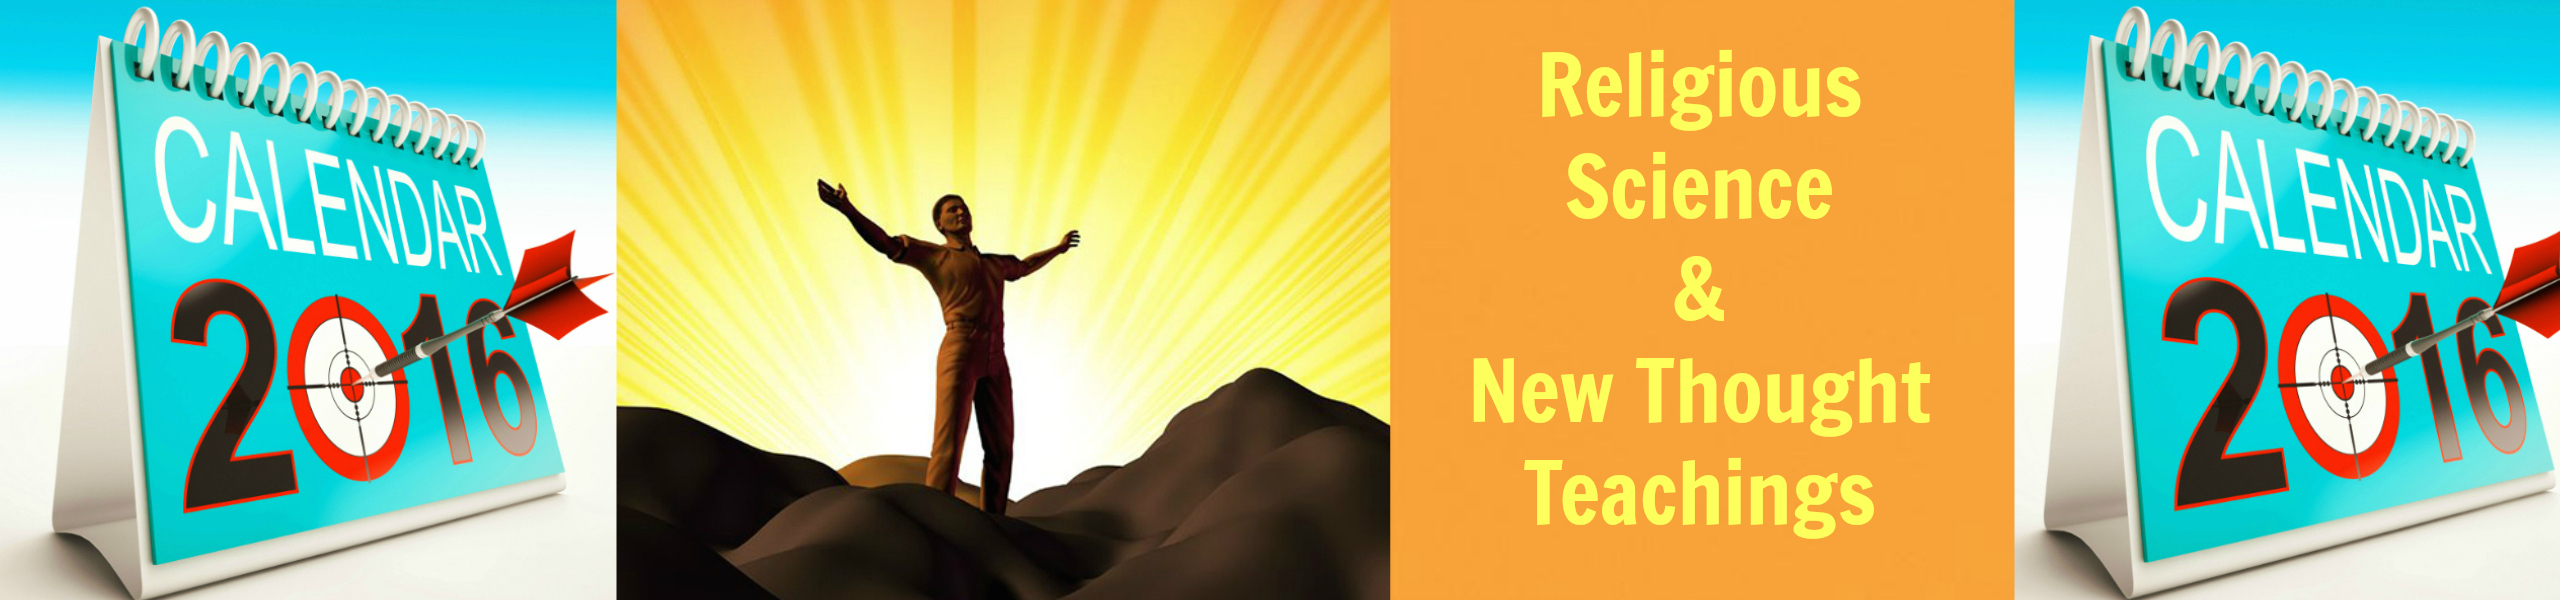 religious science-new thought newsletter header